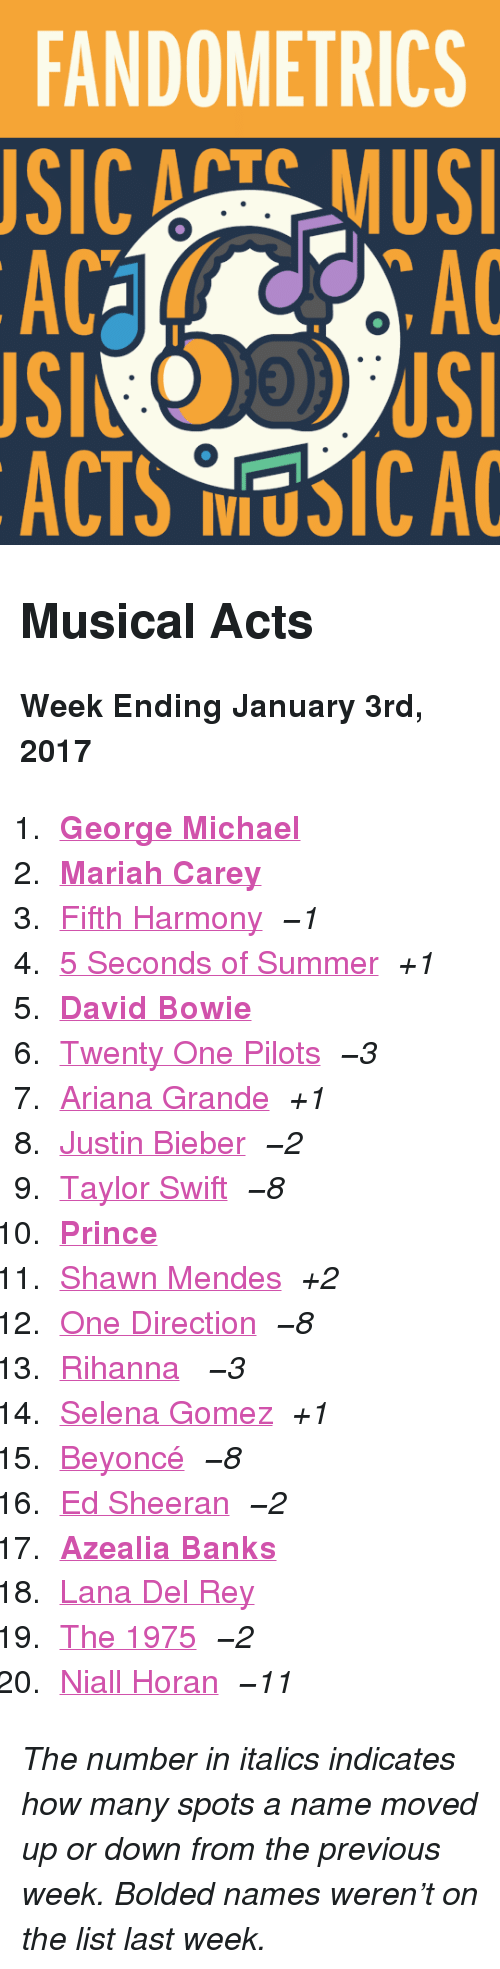 """George Michael: FANDOMETRICS  SIC ATS MUS  AC  AC  ACTS NUSICA <h2>Musical Acts</h2><p><b>Week Ending January 3rd, 2017</b></p><ol><li><a href=""""http://www.tumblr.com/search/george%20michael""""><b>George Michael</b></a></li>  <li><a href=""""http://www.tumblr.com/search/mariah%20carey""""><b>Mariah Carey</b></a></li>  <li><a href=""""http://www.tumblr.com/search/fifth%20harmony"""">Fifth Harmony</a> <i><i>−1</i></i></li>  <li><a href=""""http://www.tumblr.com/search/5sos"""">5 Seconds of Summer</a> <i>+1</i></li>  <li><a href=""""http://www.tumblr.com/search/david%20bowie""""><b>David Bowie</b></a></li>  <li><a href=""""http://www.tumblr.com/search/twenty%20one%20pilots"""">Twenty One Pilots</a> <i><i>−3</i></i></li>  <li><a href=""""http://www.tumblr.com/search/ariana%20grande"""">Ariana Grande</a><i>+1</i></li>  <li><a href=""""http://www.tumblr.com/search/justin%20bieber"""">Justin Bieber</a> <i><i>−2</i></i></li>  <li><a href=""""http://www.tumblr.com/search/taylor%20swift"""">Taylor Swift</a> <i><i>−8</i></i></li>  <li><a href=""""http://www.tumblr.com/search/prince""""><b>Prince</b></a></li>  <li><a href=""""http://www.tumblr.com/search/shawn%20mendes"""">Shawn Mendes</a><i>+2</i></li>  <li><a href=""""http://www.tumblr.com/search/one%20direction"""">One Direction</a> <i><i>−8</i></i></li>  <li><a href=""""http://www.tumblr.com/search/rihanna"""">Rihanna</a> <i><i>−3</i></i></li>  <li><a href=""""http://www.tumblr.com/search/selena%20gomez"""">Selena Gomez</a><i>+1</i></li>  <li><a href=""""http://www.tumblr.com/search/beyonce"""">Beyoncé</a> <i><i>−8</i></i></li>  <li><a href=""""http://www.tumblr.com/search/ed%20sheeran"""">Ed Sheeran</a> <i><i>−2</i></i></li>  <li><a href=""""http://www.tumblr.com/search/azealia%20banks""""><b>Azealia Banks</b></a></li>  <li><a href=""""http://www.tumblr.com/search/lana%20del%20rey"""">Lana Del Rey</a></li>  <li><a href=""""http://www.tumblr.com/search/the%201975"""">The 1975</a> <i><i>−2</i></i></li>  <li><a href=""""http://www.tumblr.com/search/niall%20horan"""">Niall Horan</a> <i><i>−11</i></i></li></ol><p><i>The number in italics indi"""